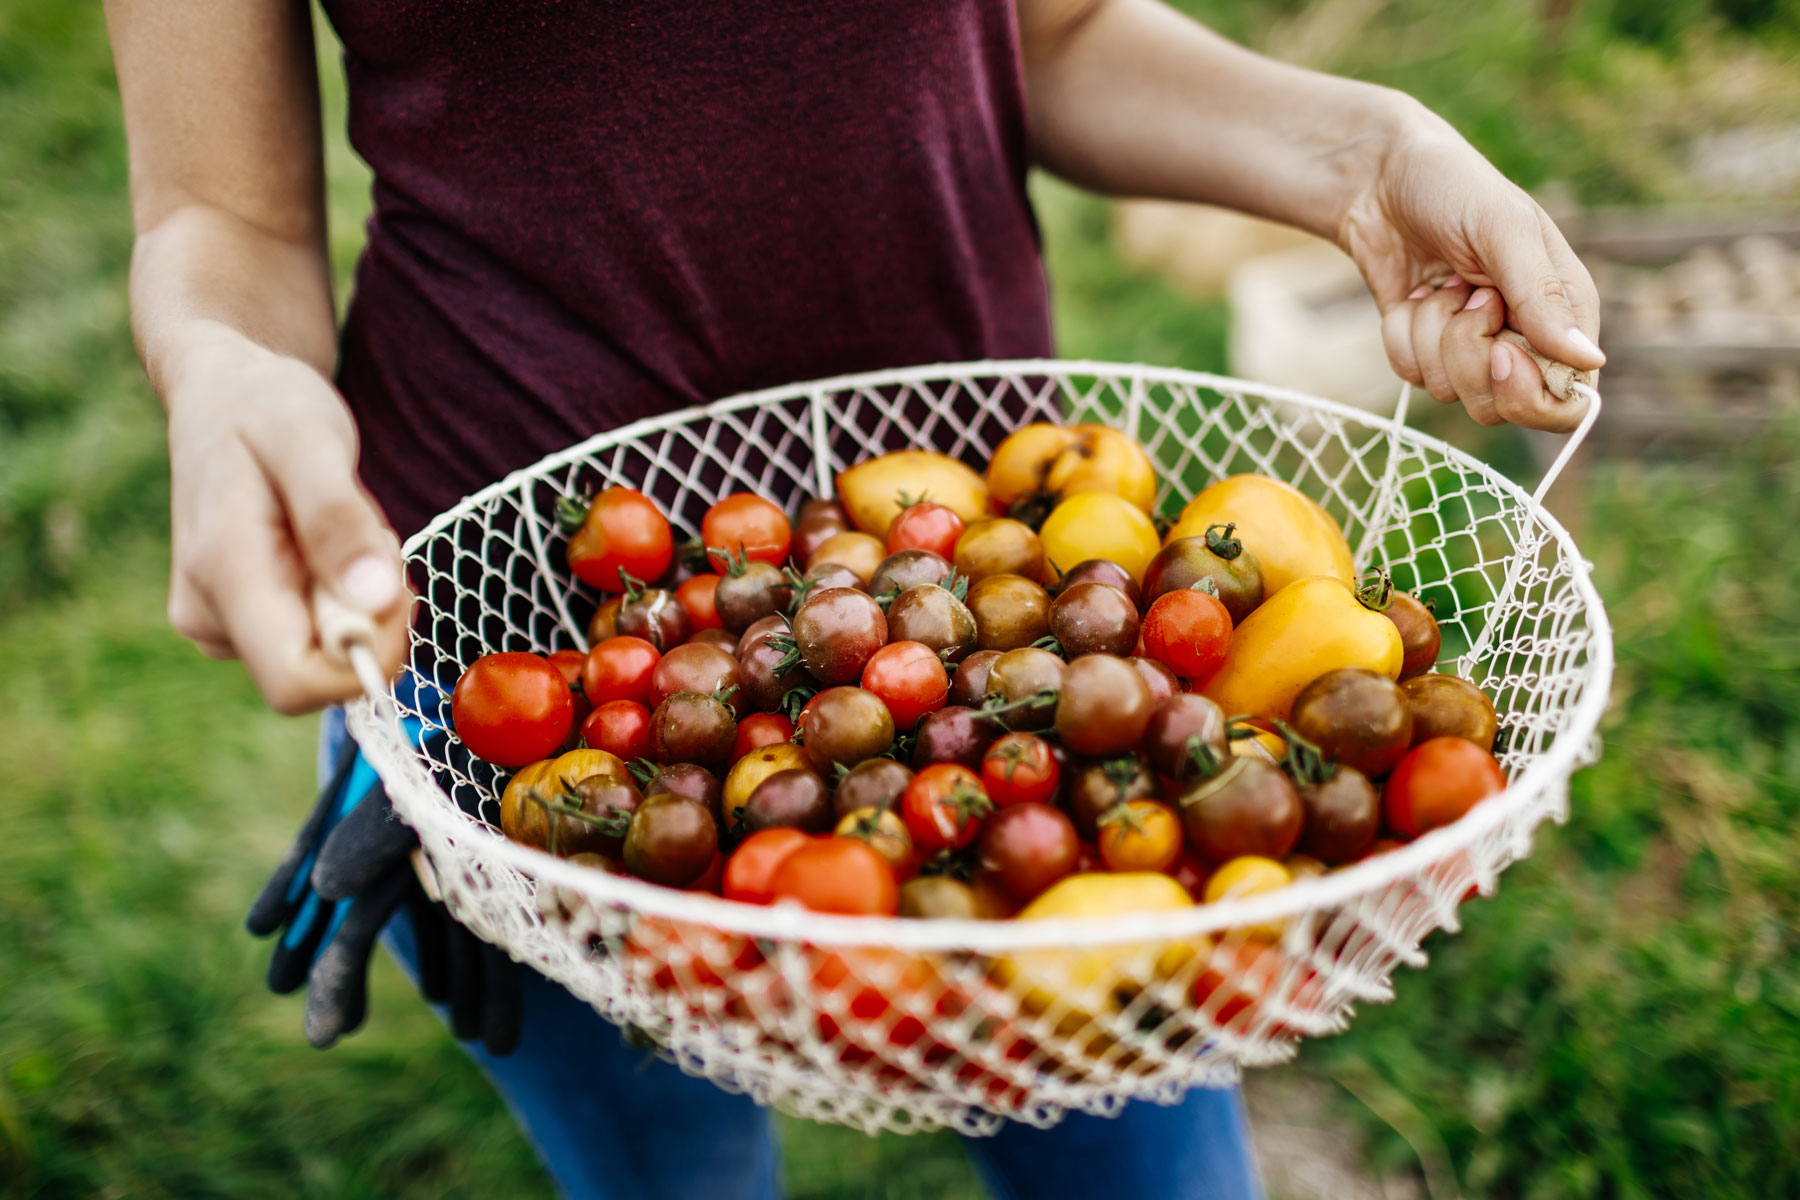 A large wire basket filled with heirloom tomatoes